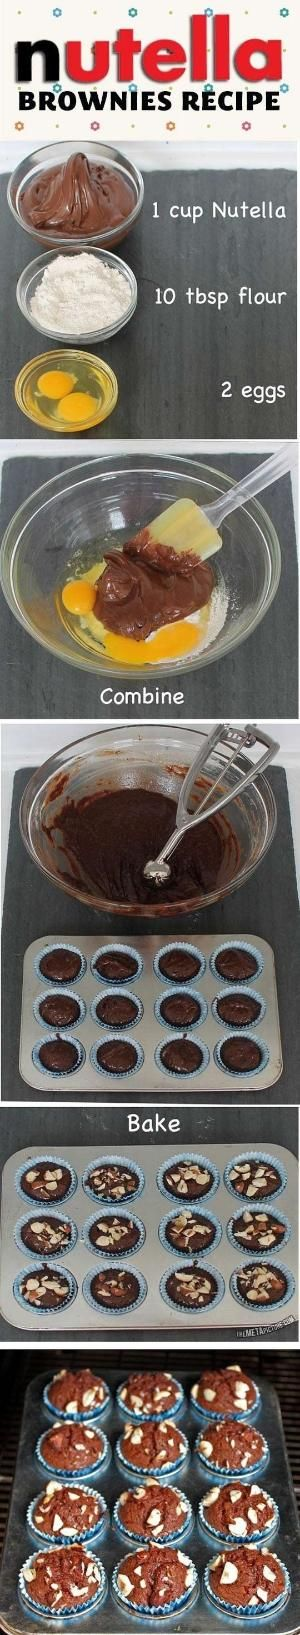 Nutella Brownie Recipe by AislingH